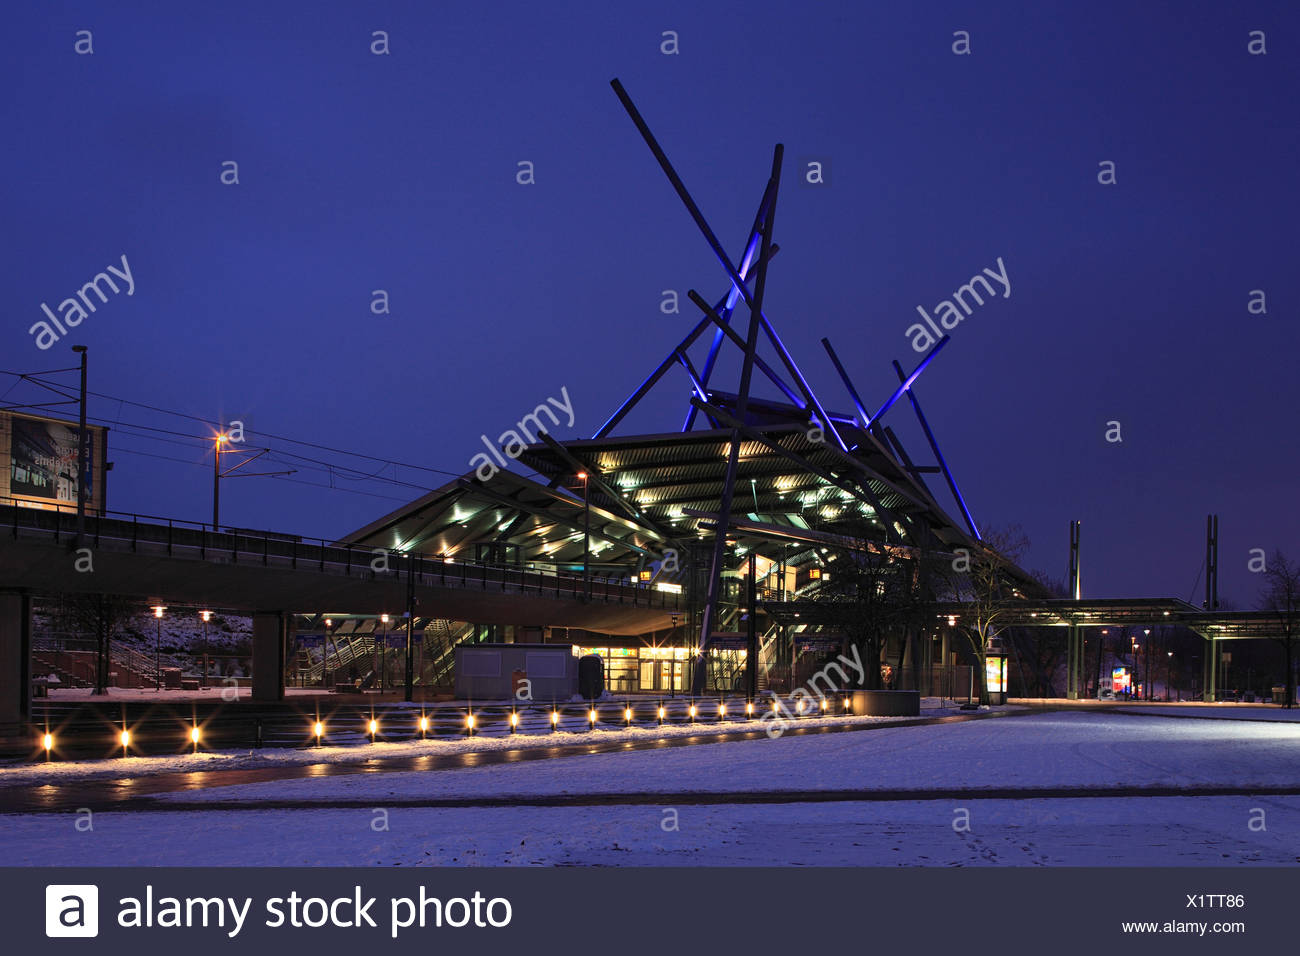 Germany, Europe, Oberhausen, Ruhr area, Lower Rhine, North Rhine-Westphalia, Germany, Europe, Oberhausen-Neue Mitte, shopping ce - Stock Image